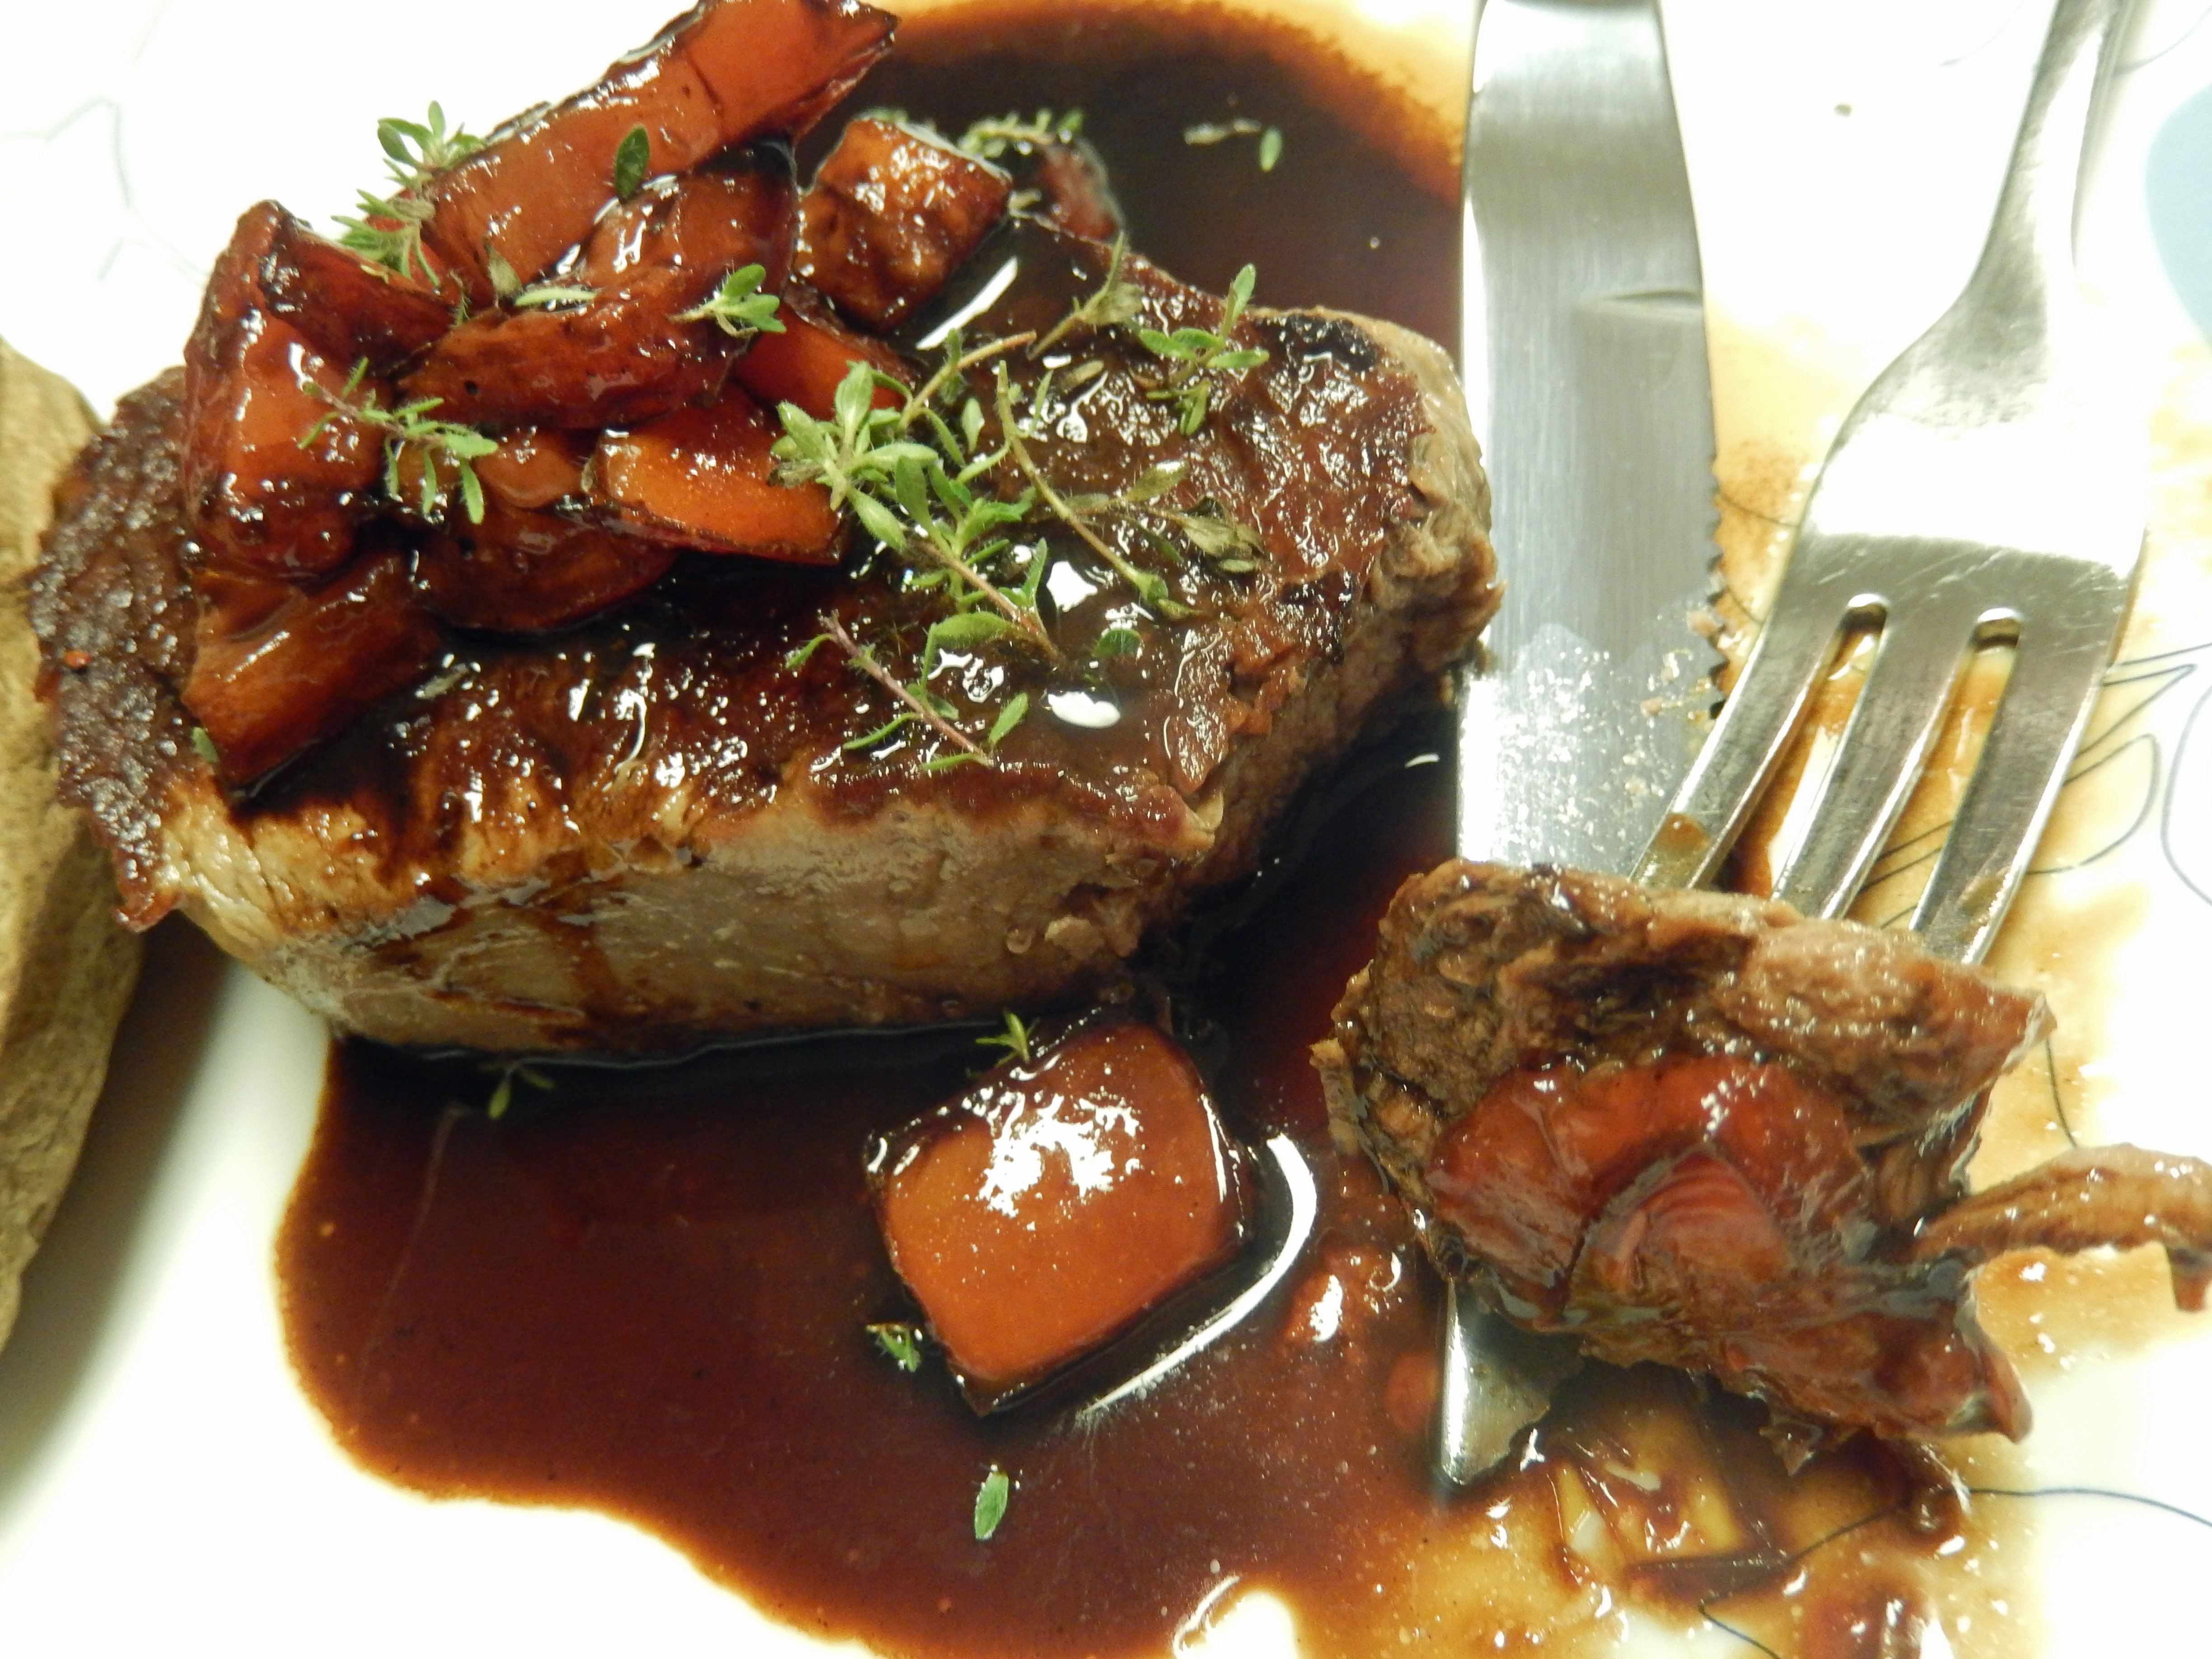 Spoon the tomatoes in the balsamic reduction and the fresh thyme over the steaks to serve.